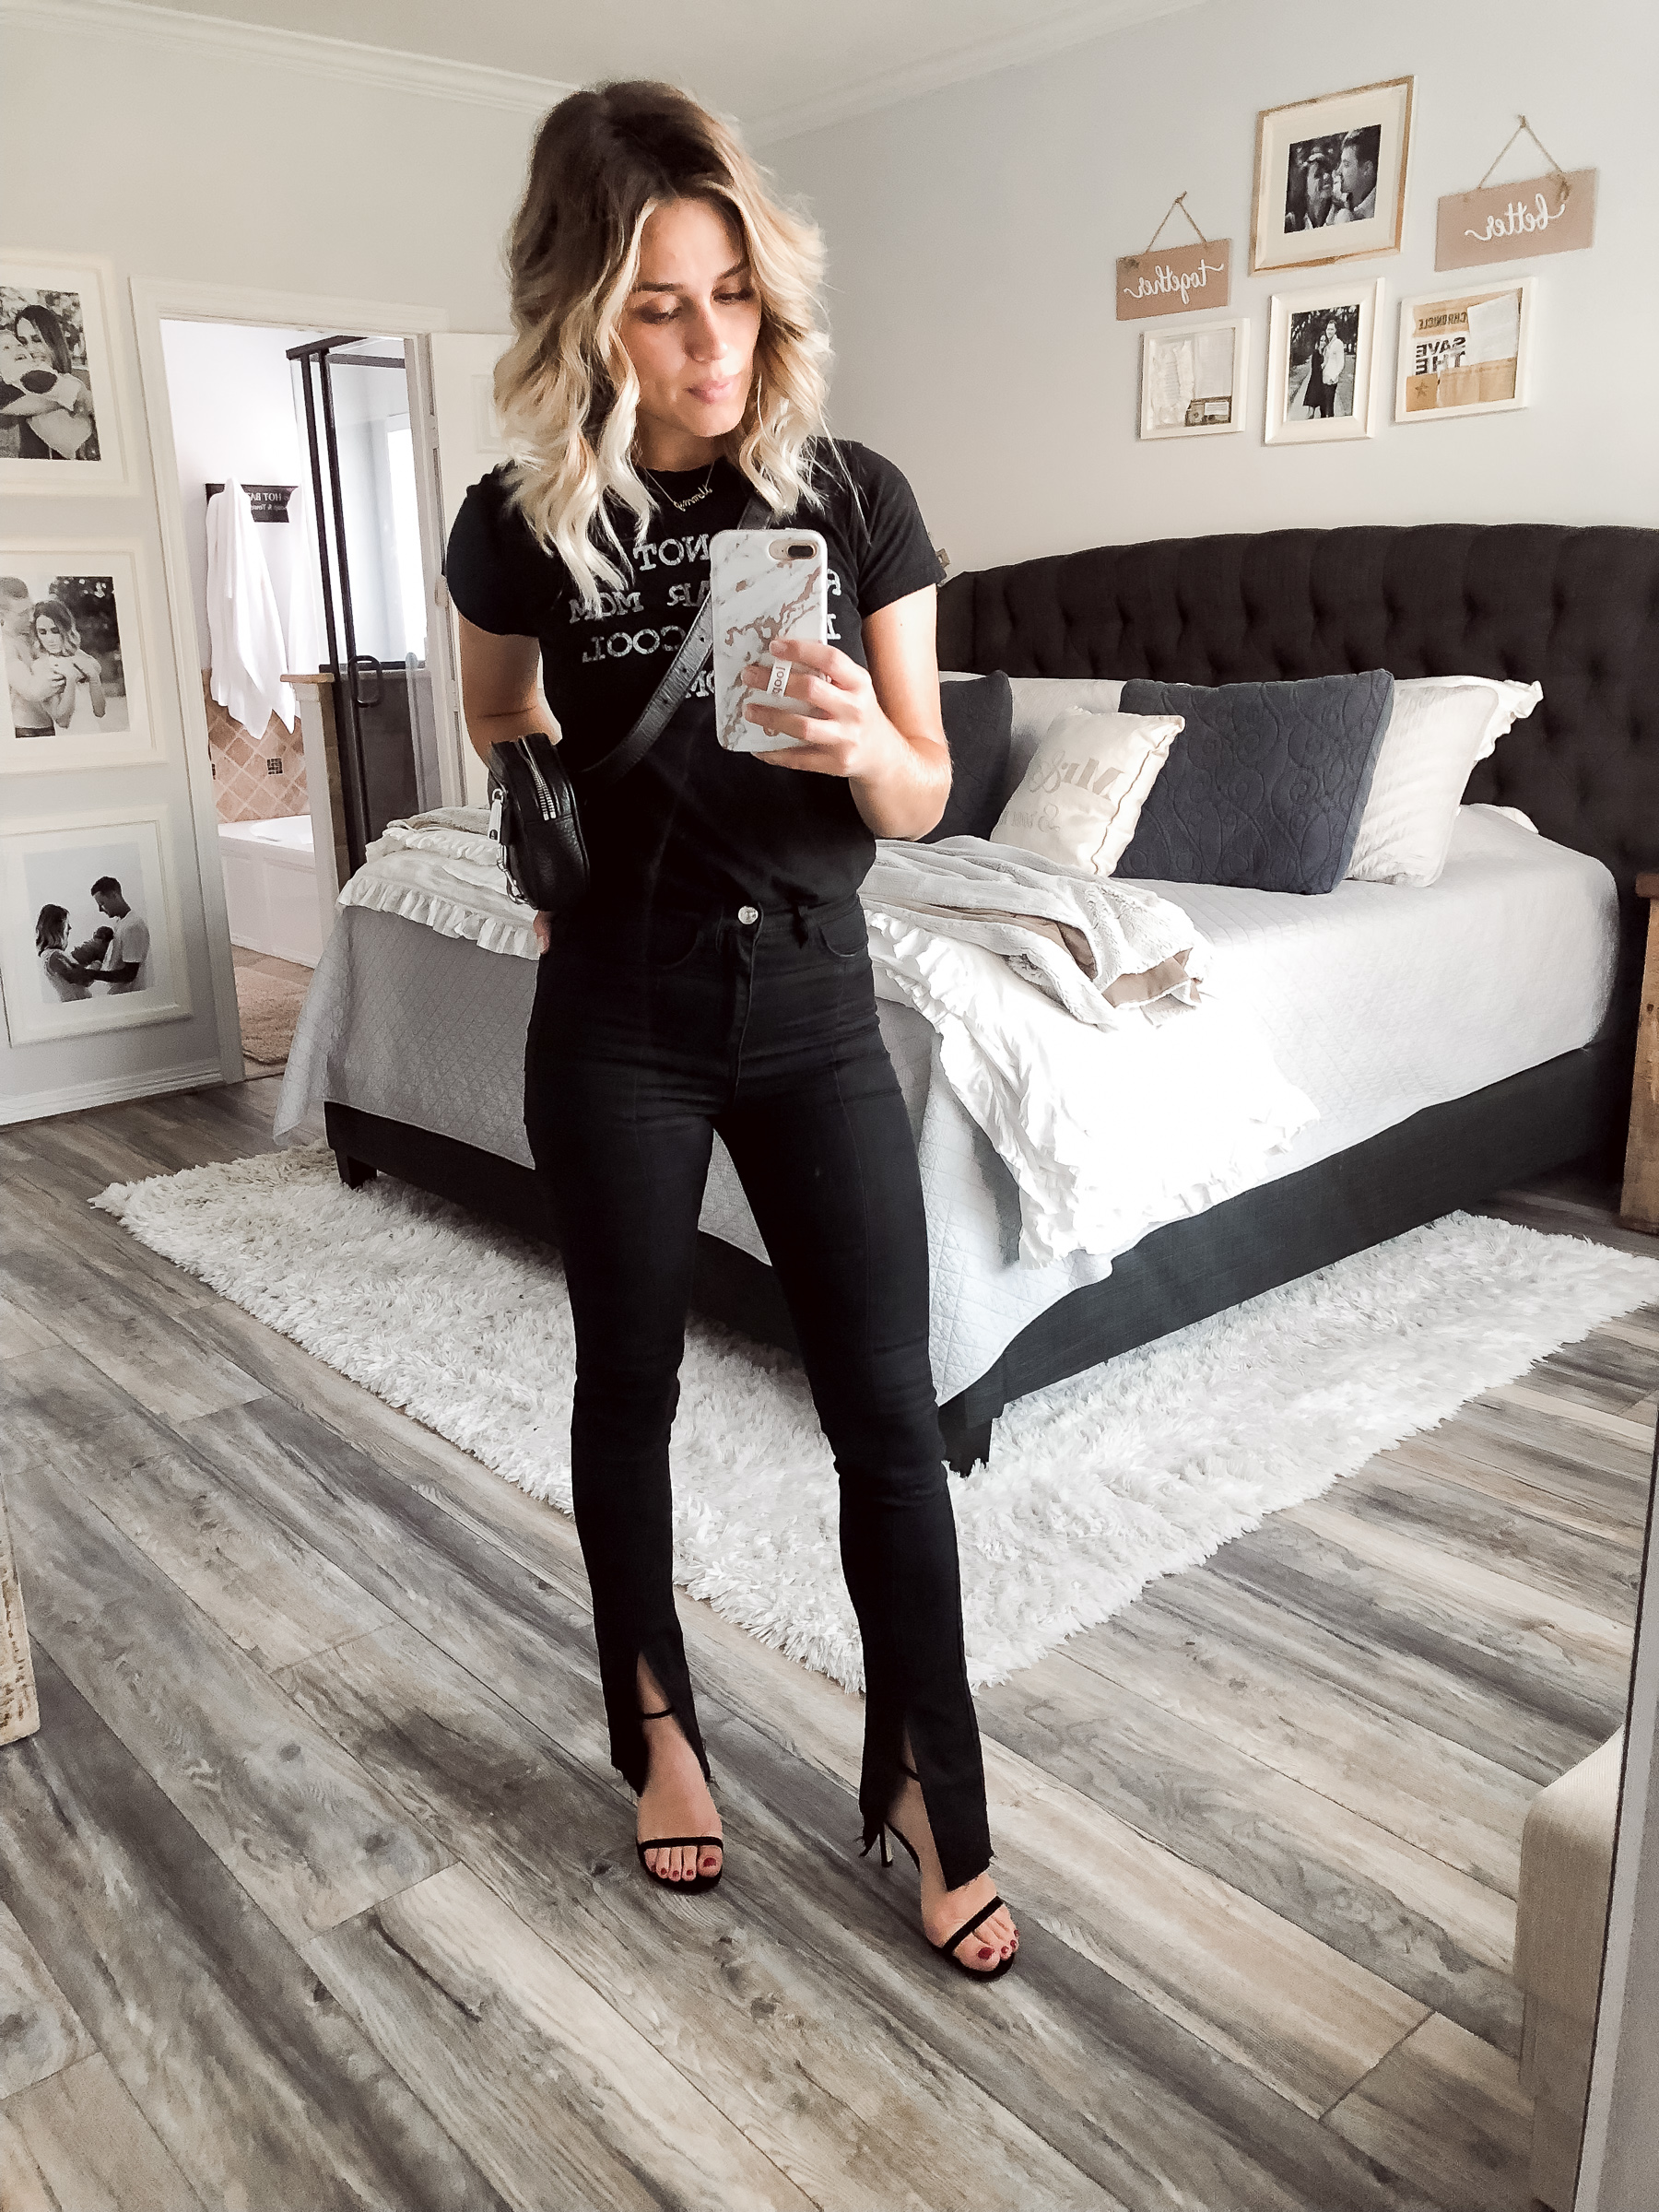 Houston fashion blogger Uptown with Elly Brown wears an all black 90's inspired outfit